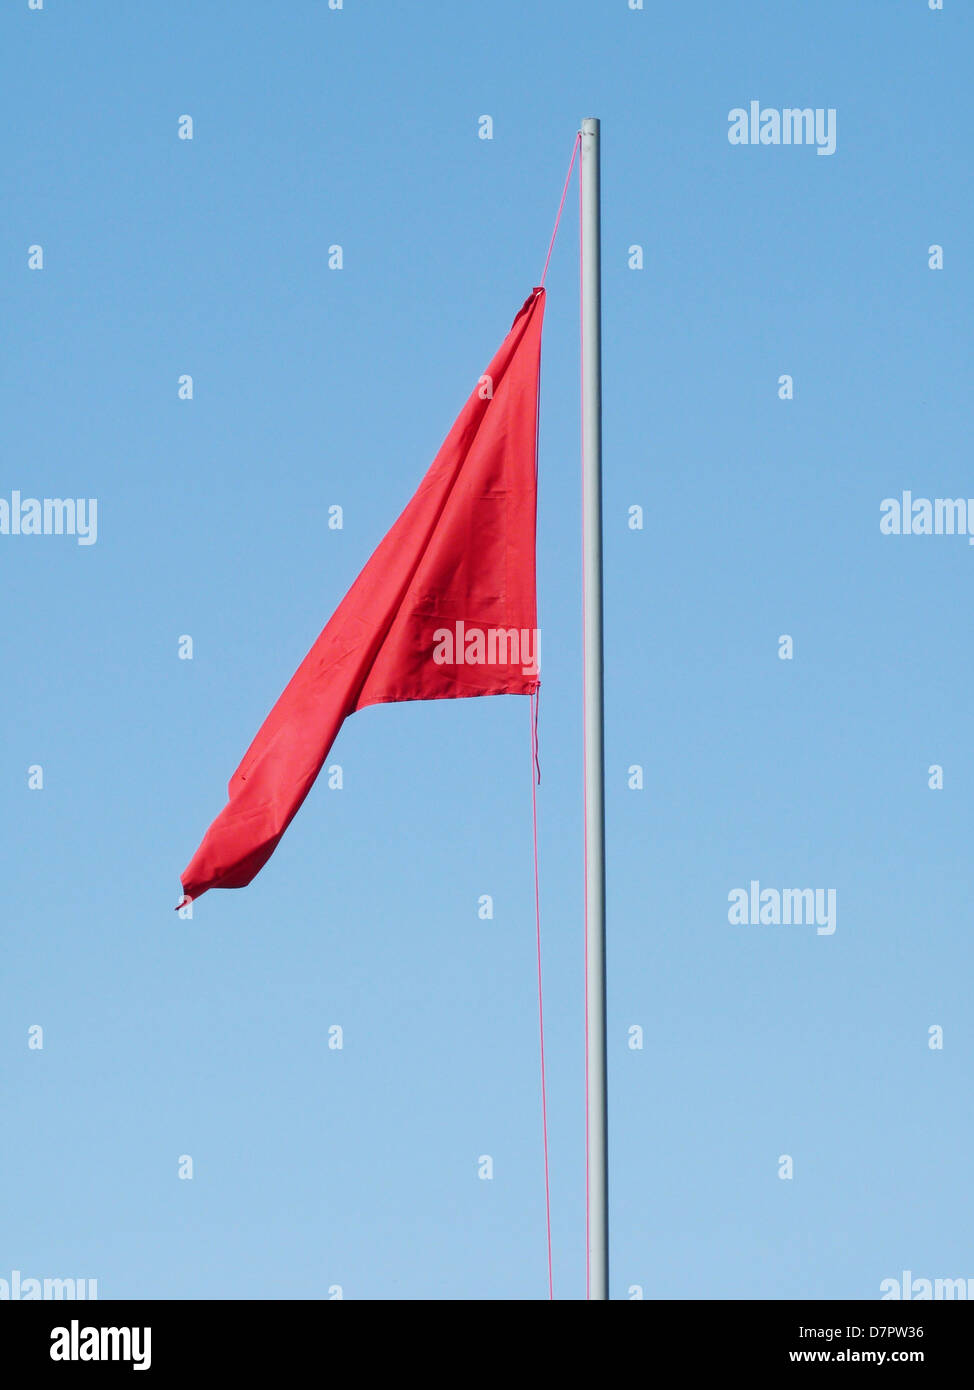 red flag communism totalitarian regime politics banner flag is raised unfreedom staff wind high day holiday blue Stock Photo